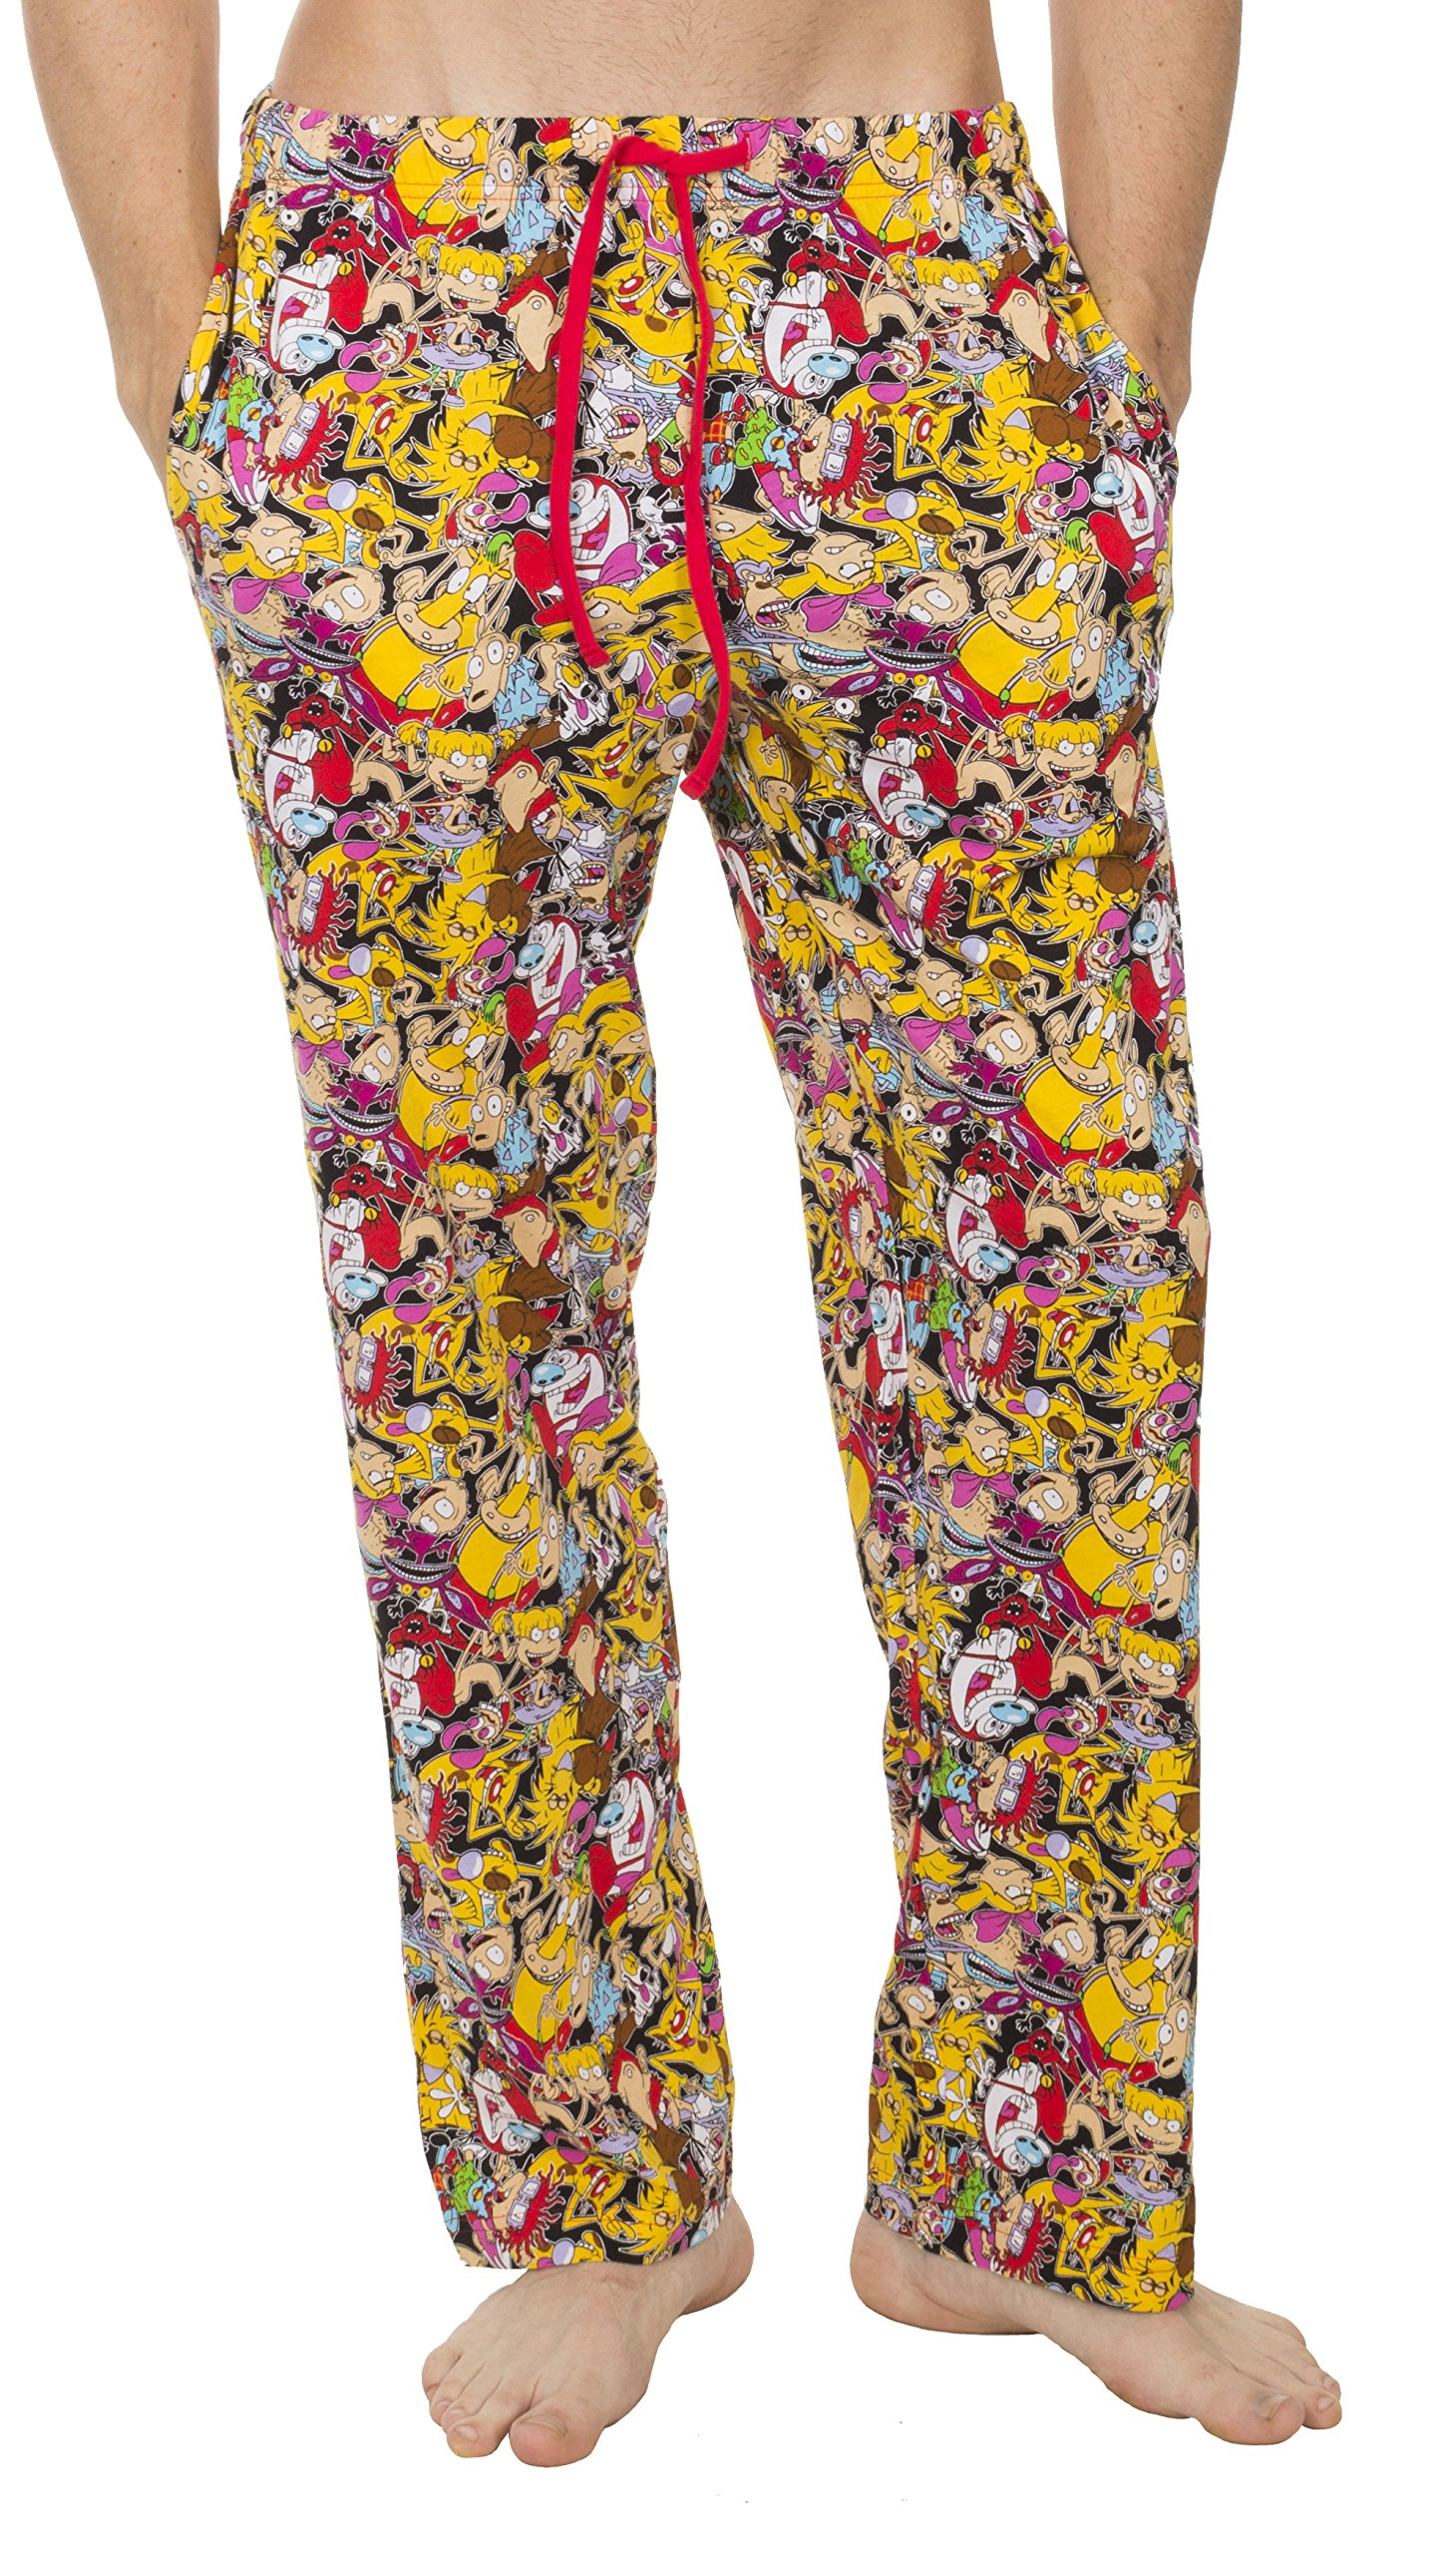 Underboss Mens Nick Rewind Nostalgia Mob Scene Multiprinted Characters Unisex Lounge Pants with Drawstring Waist Red/Yellow Small